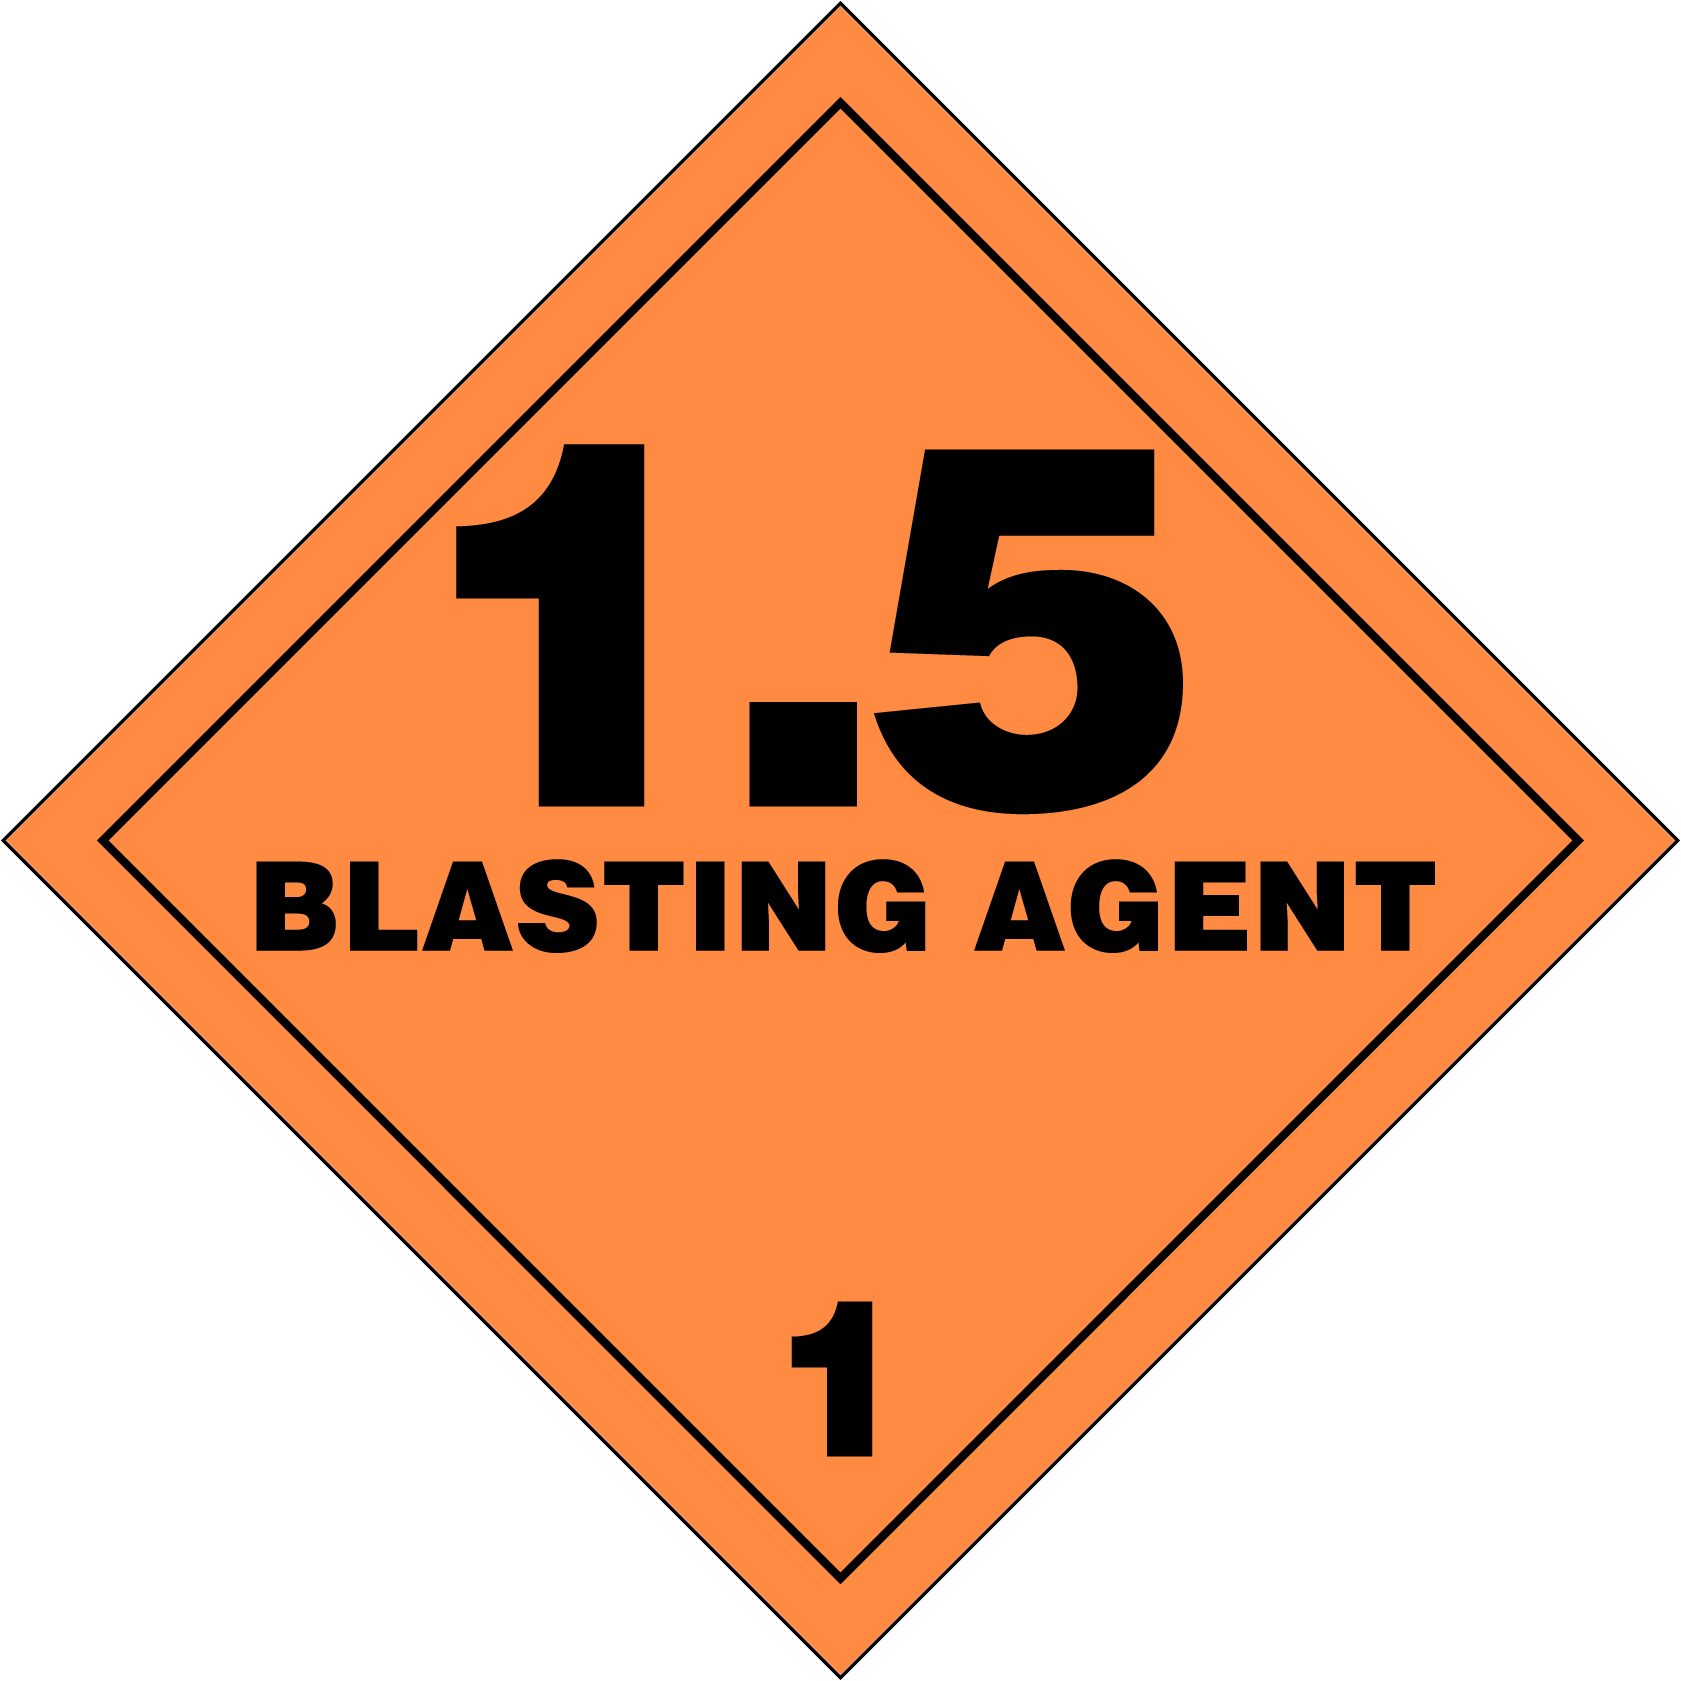 Inventive image for printable hazmat placards